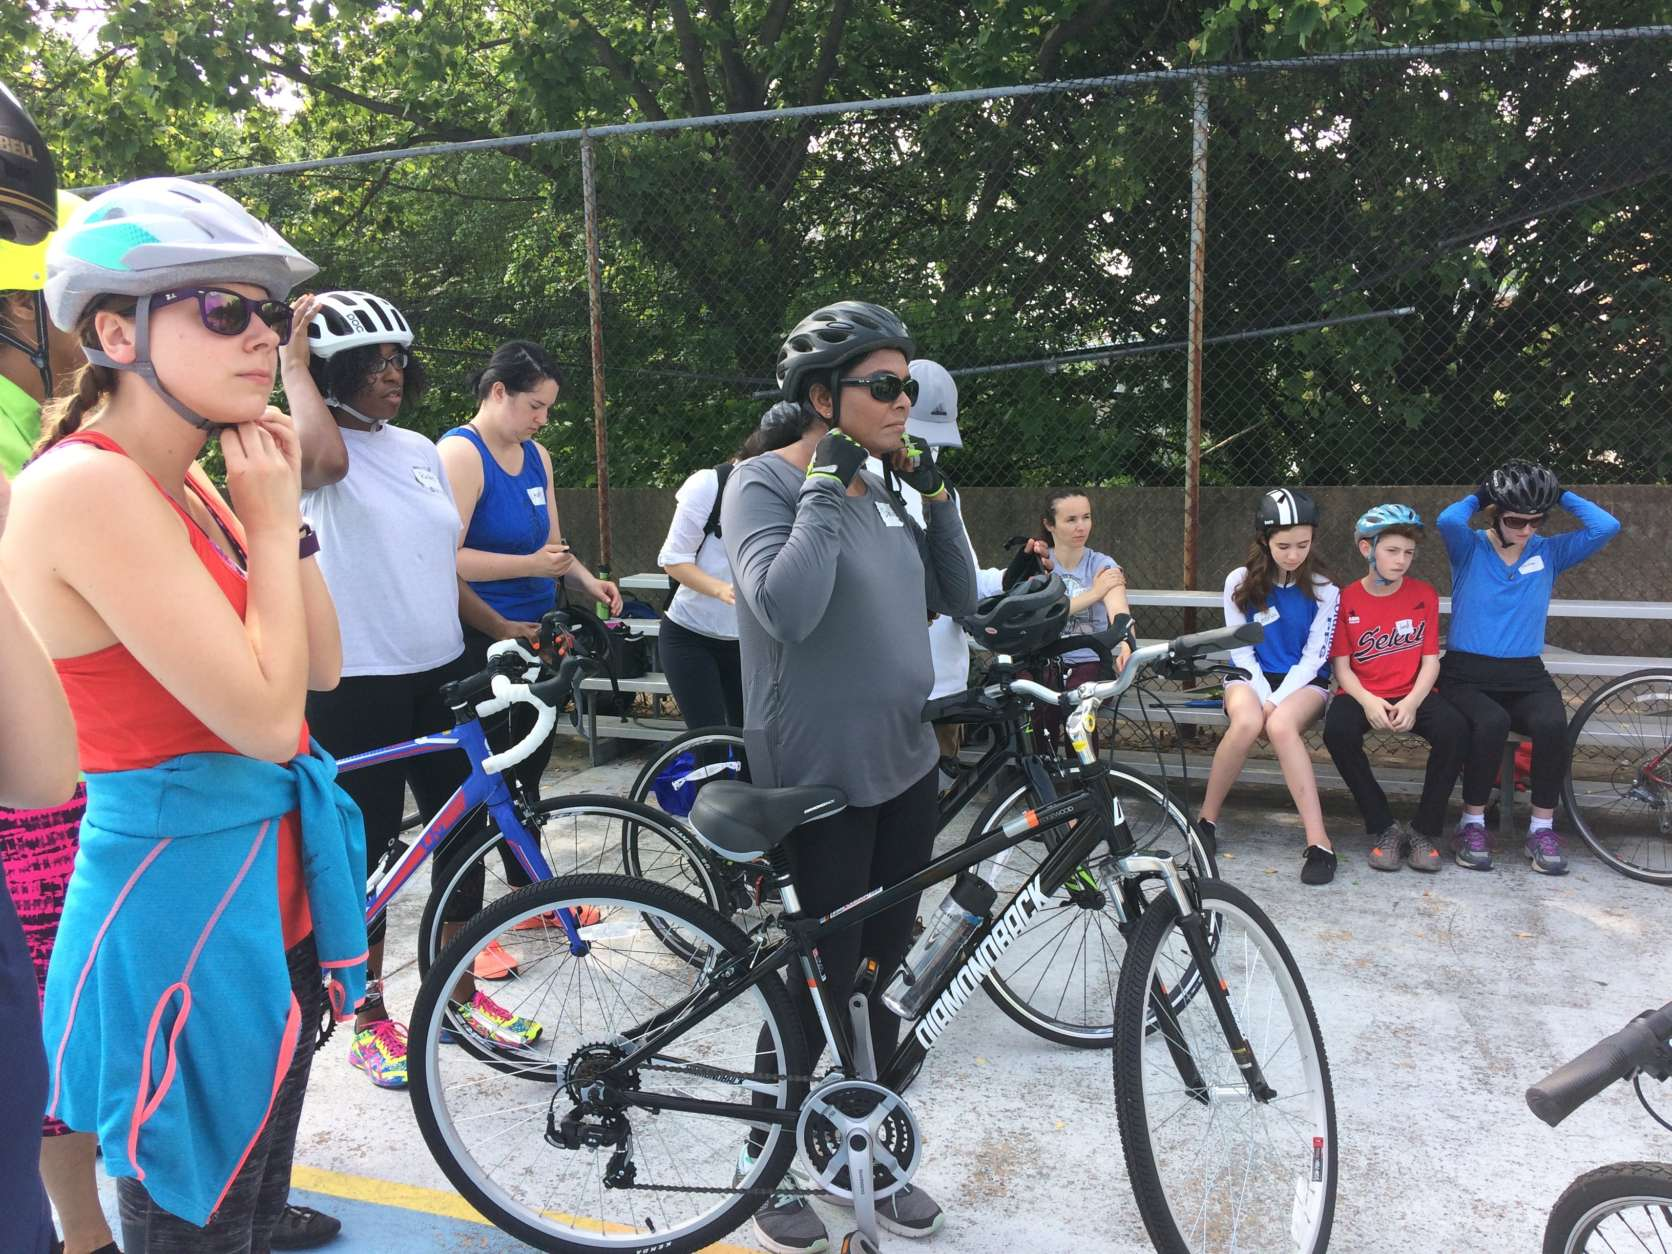 Riders during a Washington Area Bicyclist Association City Cycling class in Arlington, Virginia, on April 30, 2017, listen to announcements before the start of class. (WTOP/Abigail Constantino)